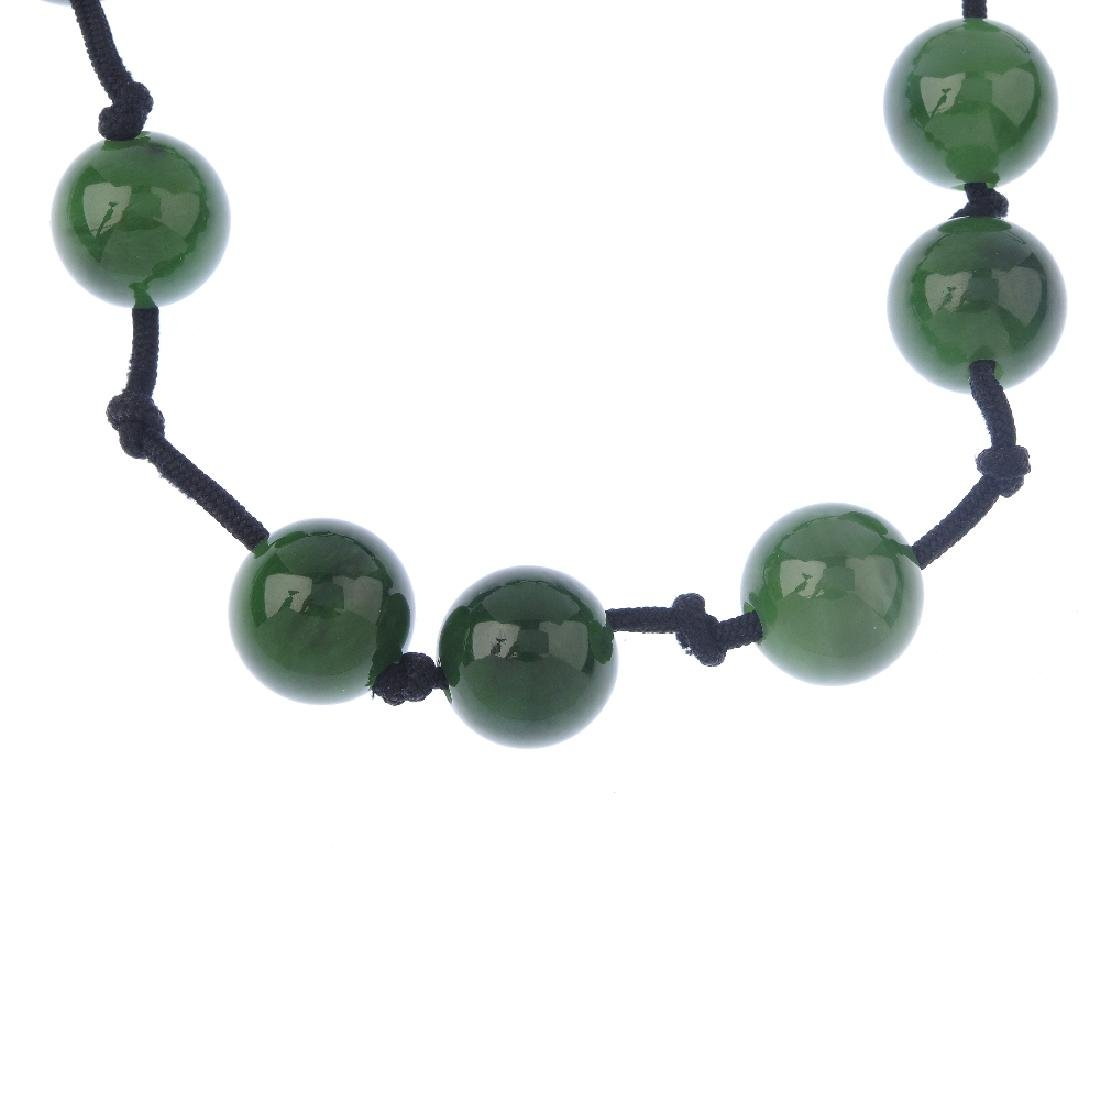 TIFFANY & CO. - a jade 'Sphere' necklace. Comprising